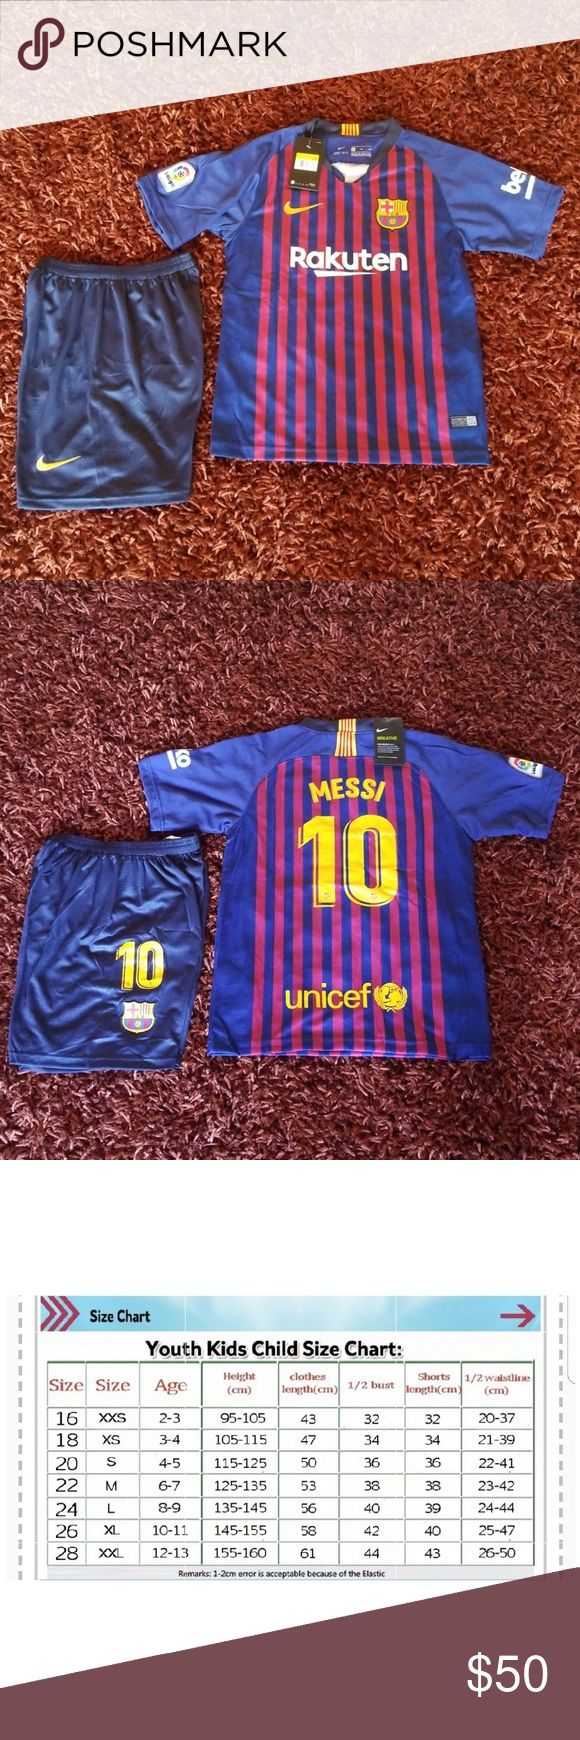 BARCELONA 2018/19 MESSI KID UNIFORM SOCCER JERSEY Brand new  Never used  Same bussiness day shipping Perfect gift for your friend, boyfriend or husban…